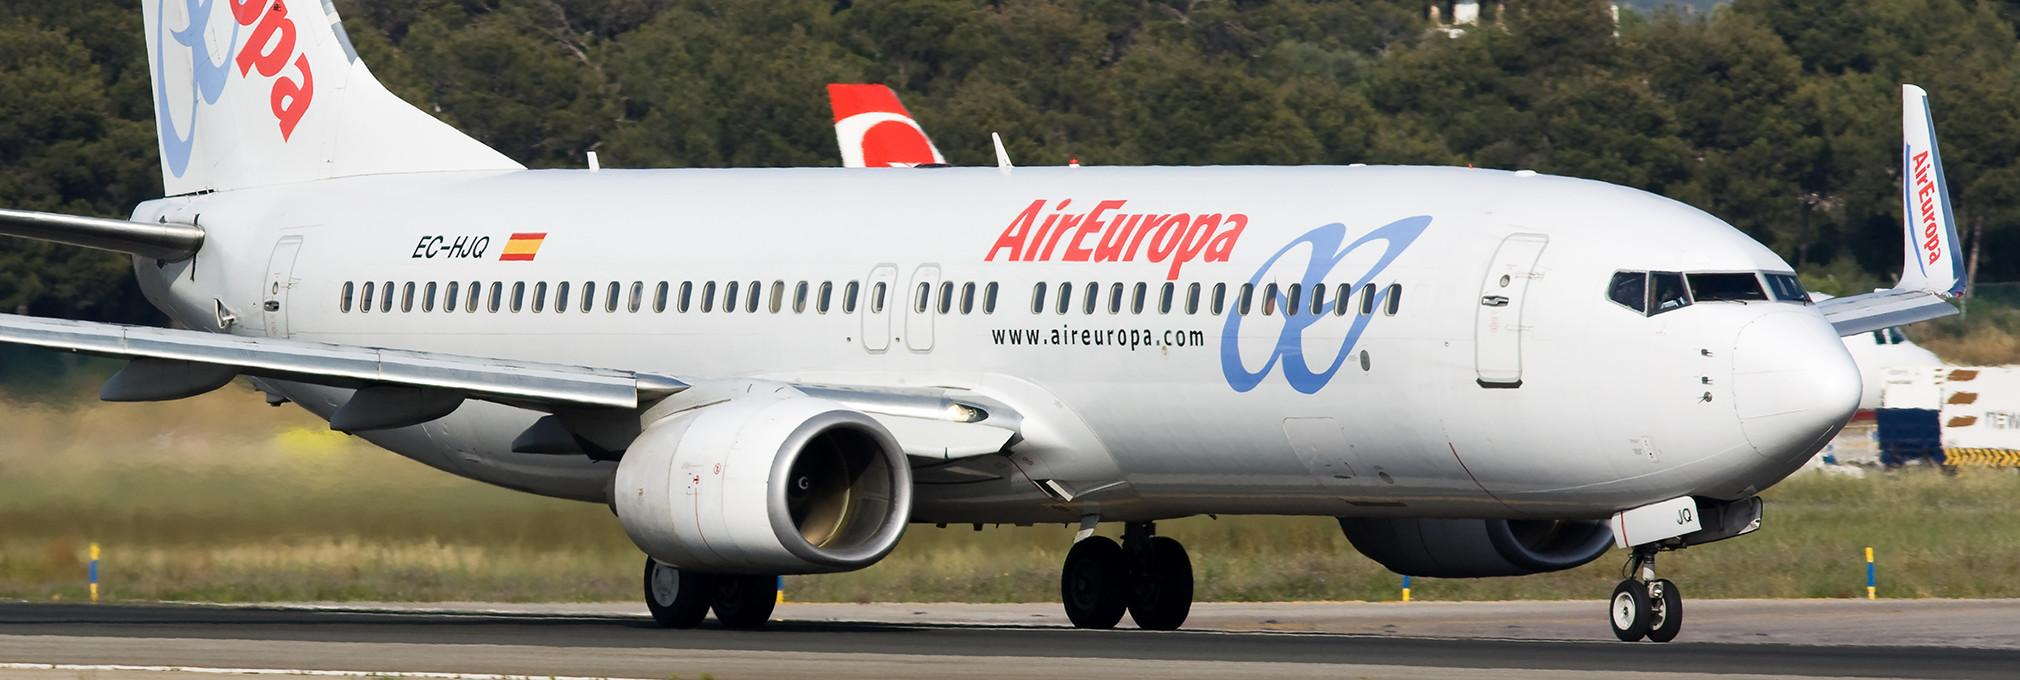 Air europa proh be el samsung galaxy note 7 en sus aviones for Air europa oficinas en madrid